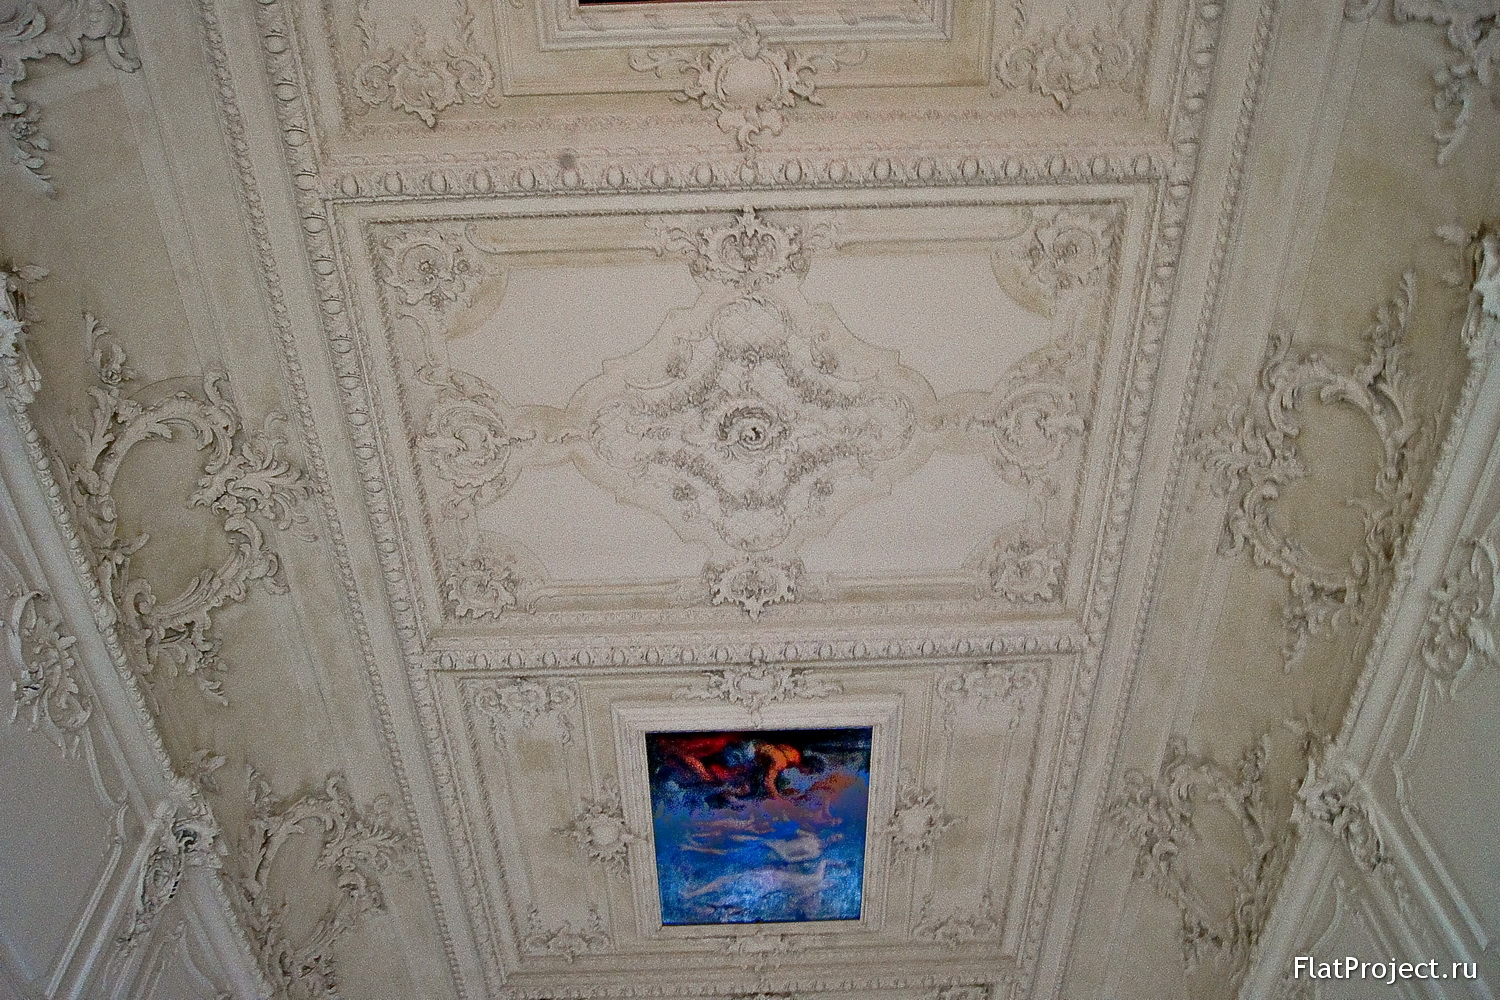 The Catherine Palace interiors – photo 13